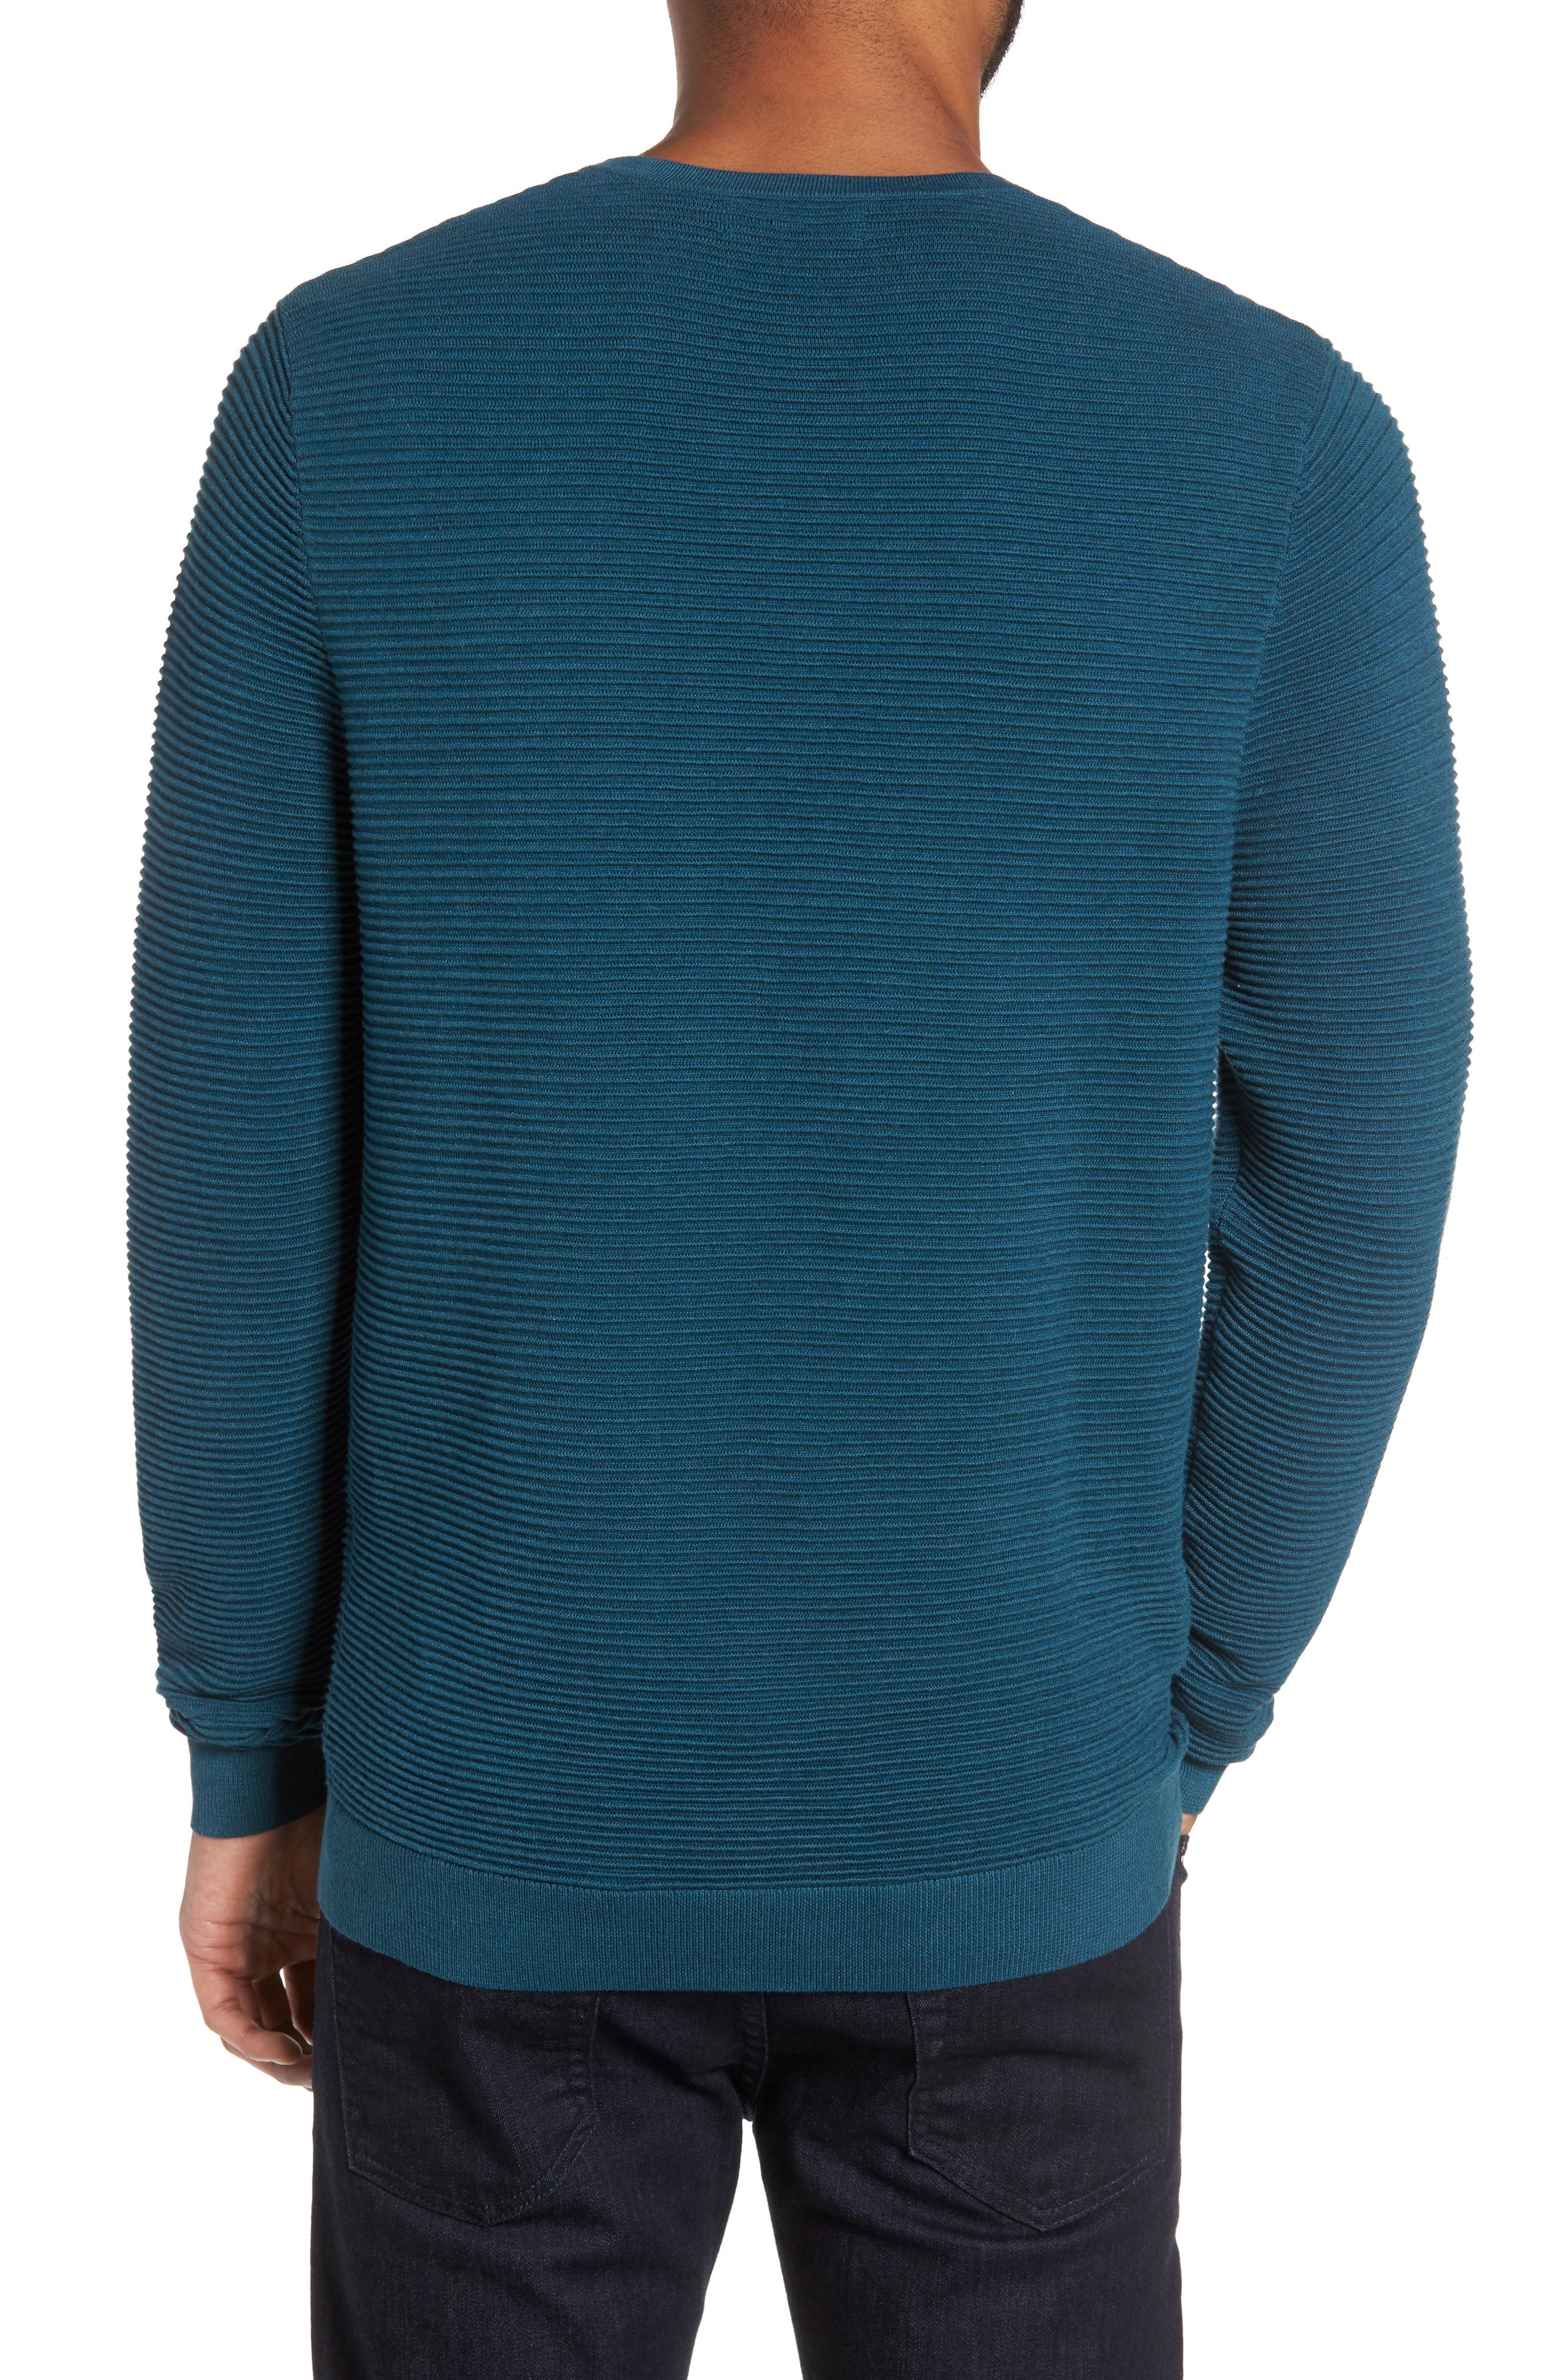 Ottoman Ribbed Crewneck Sweater,                             Alternate thumbnail 6, color,